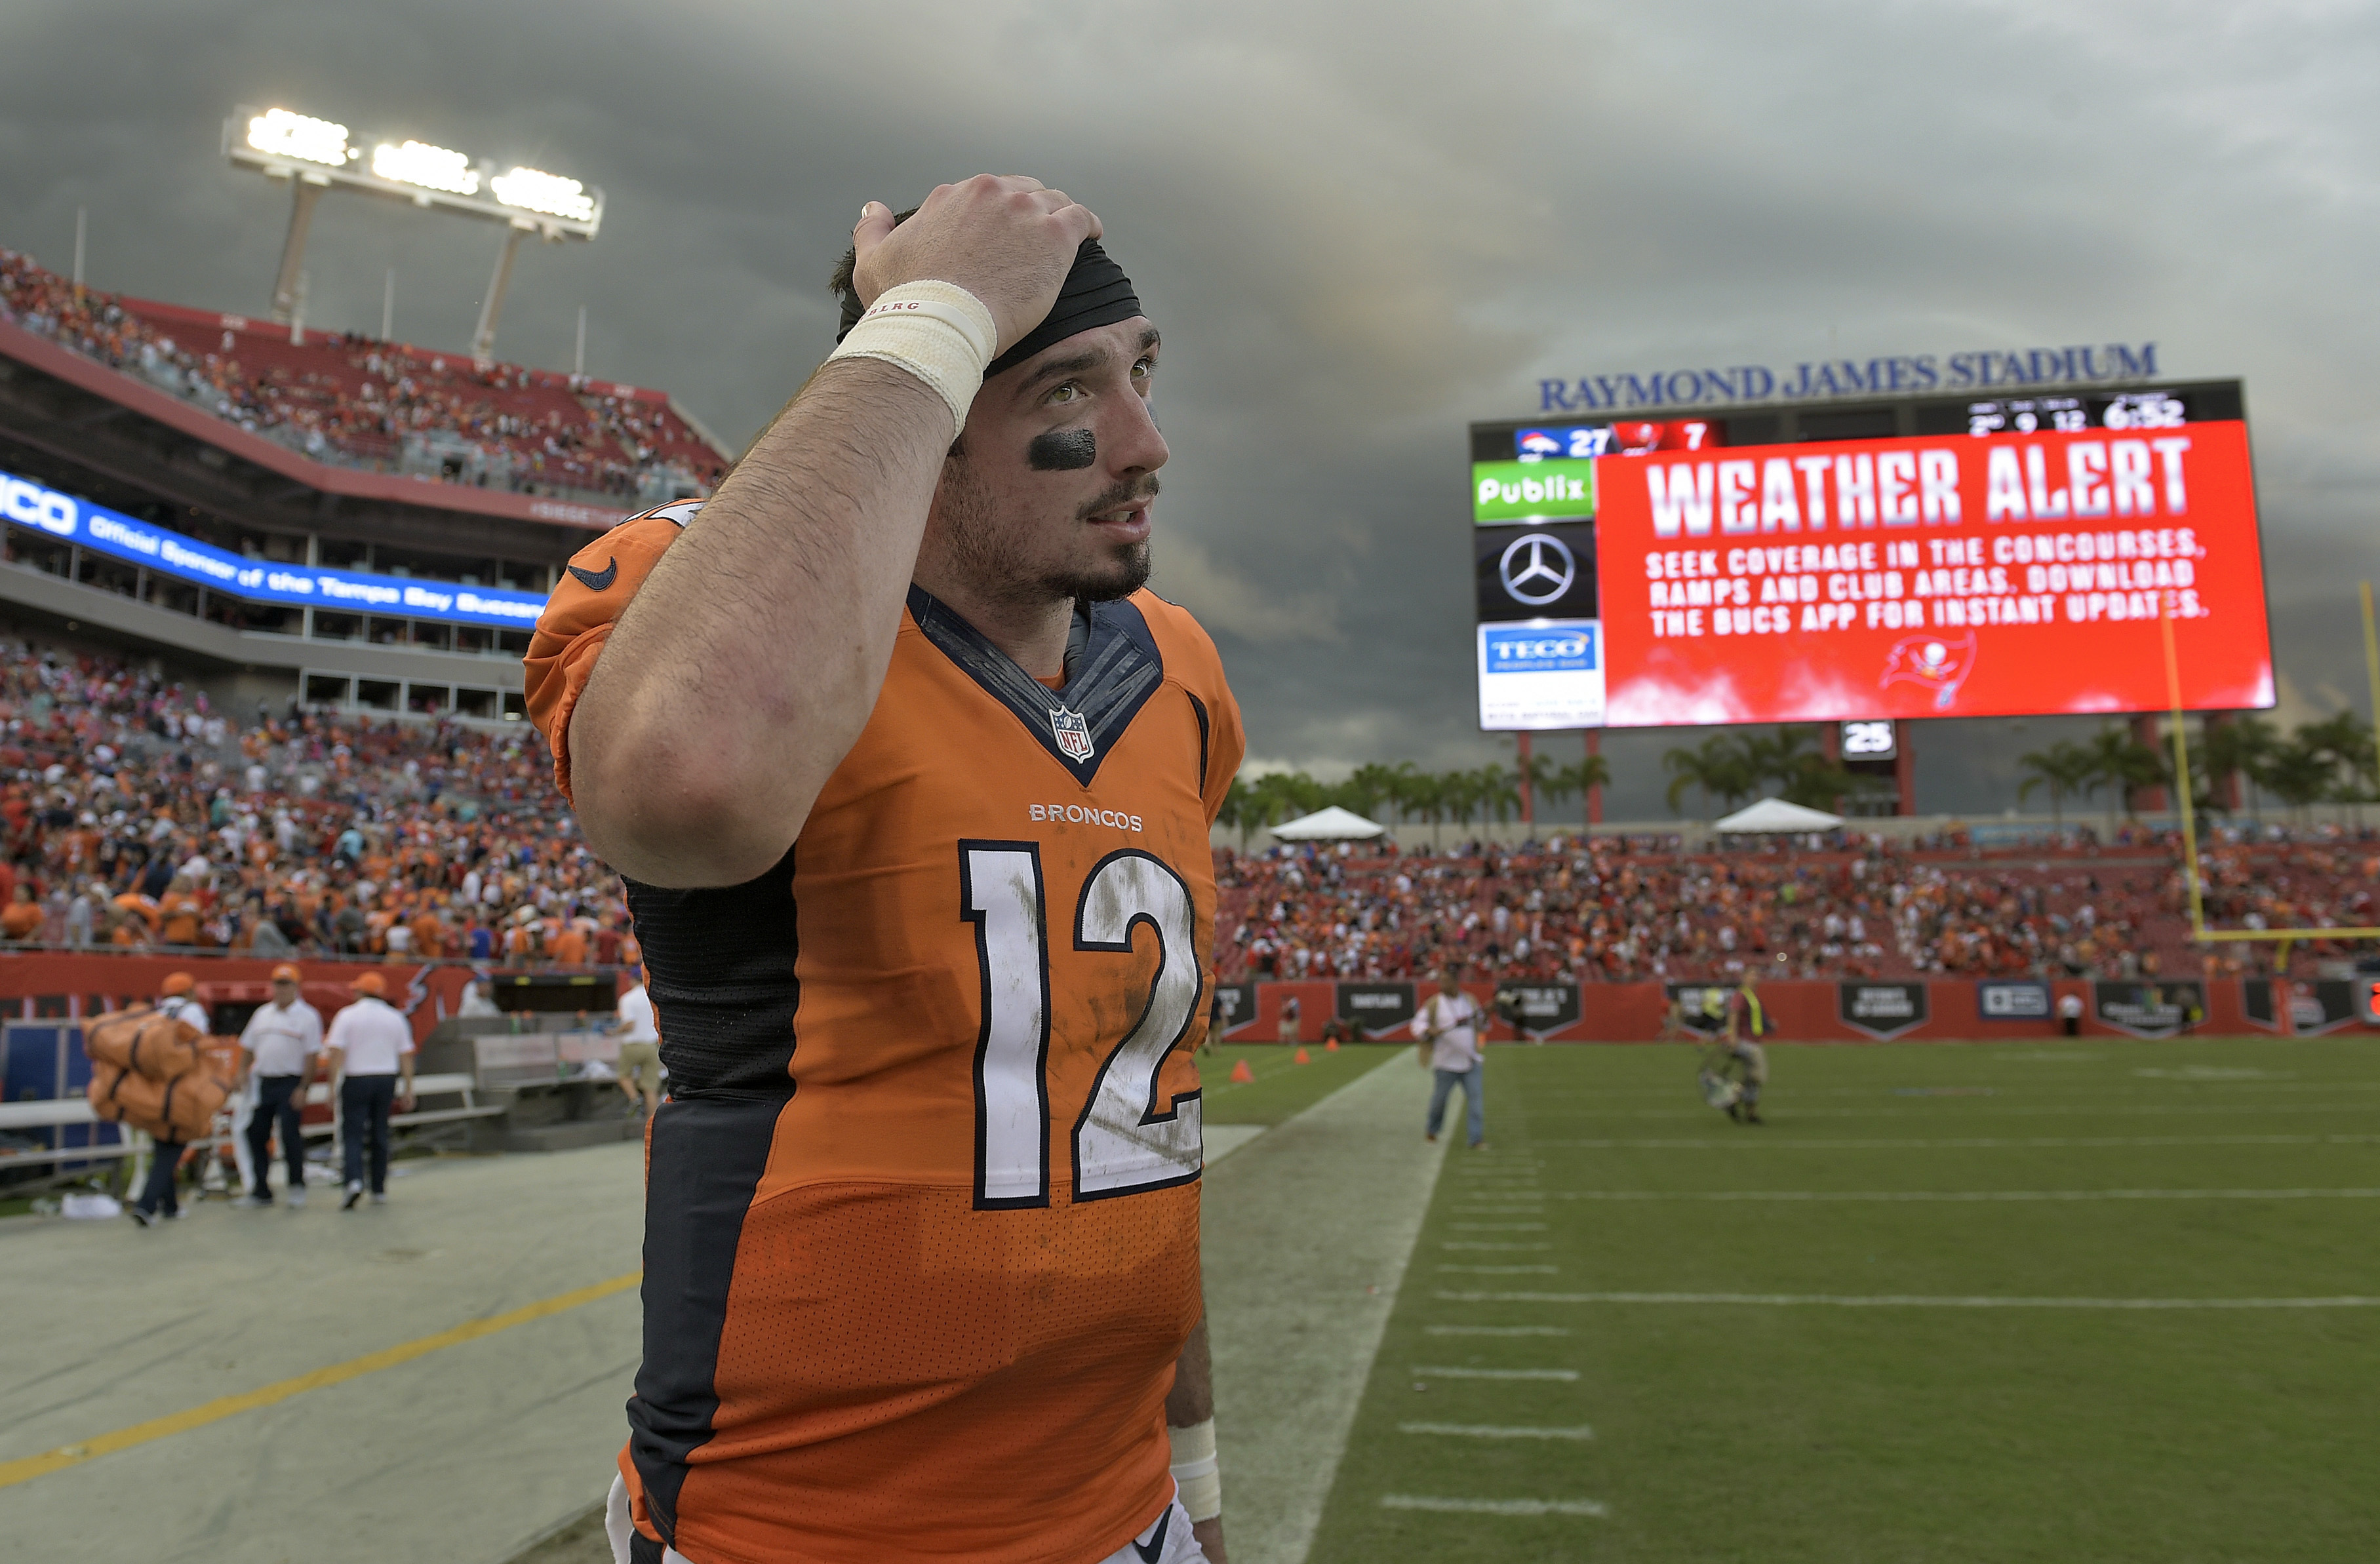 Denver Broncos quarterback Paxton Lynch (12) heads for the locker room during a weather delay in the fourth quarter of an NFL football game against the Tampa Bay Buccaneers Sunday, Oct. 2, 2016, in Tampa, Fla. (AP Photo/Phelan M. Ebenhack)